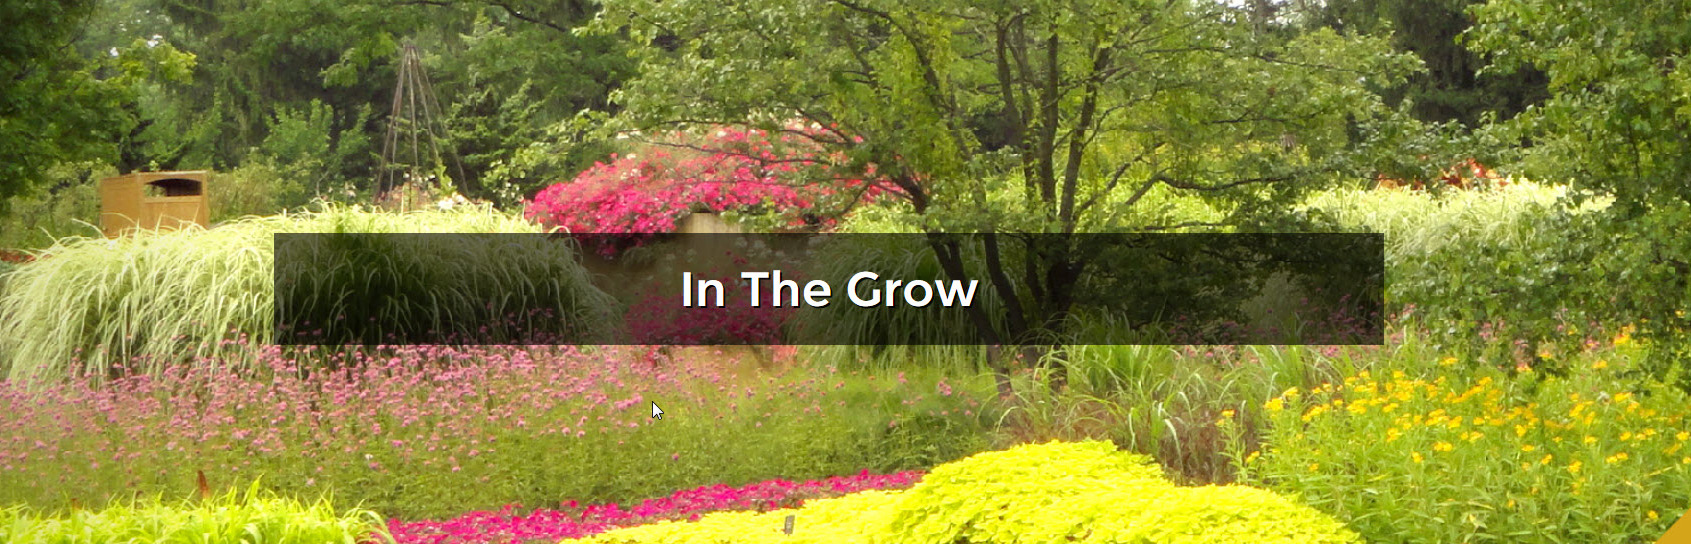 In The Grow Header Image of a Garden showing trees and assorted flowers